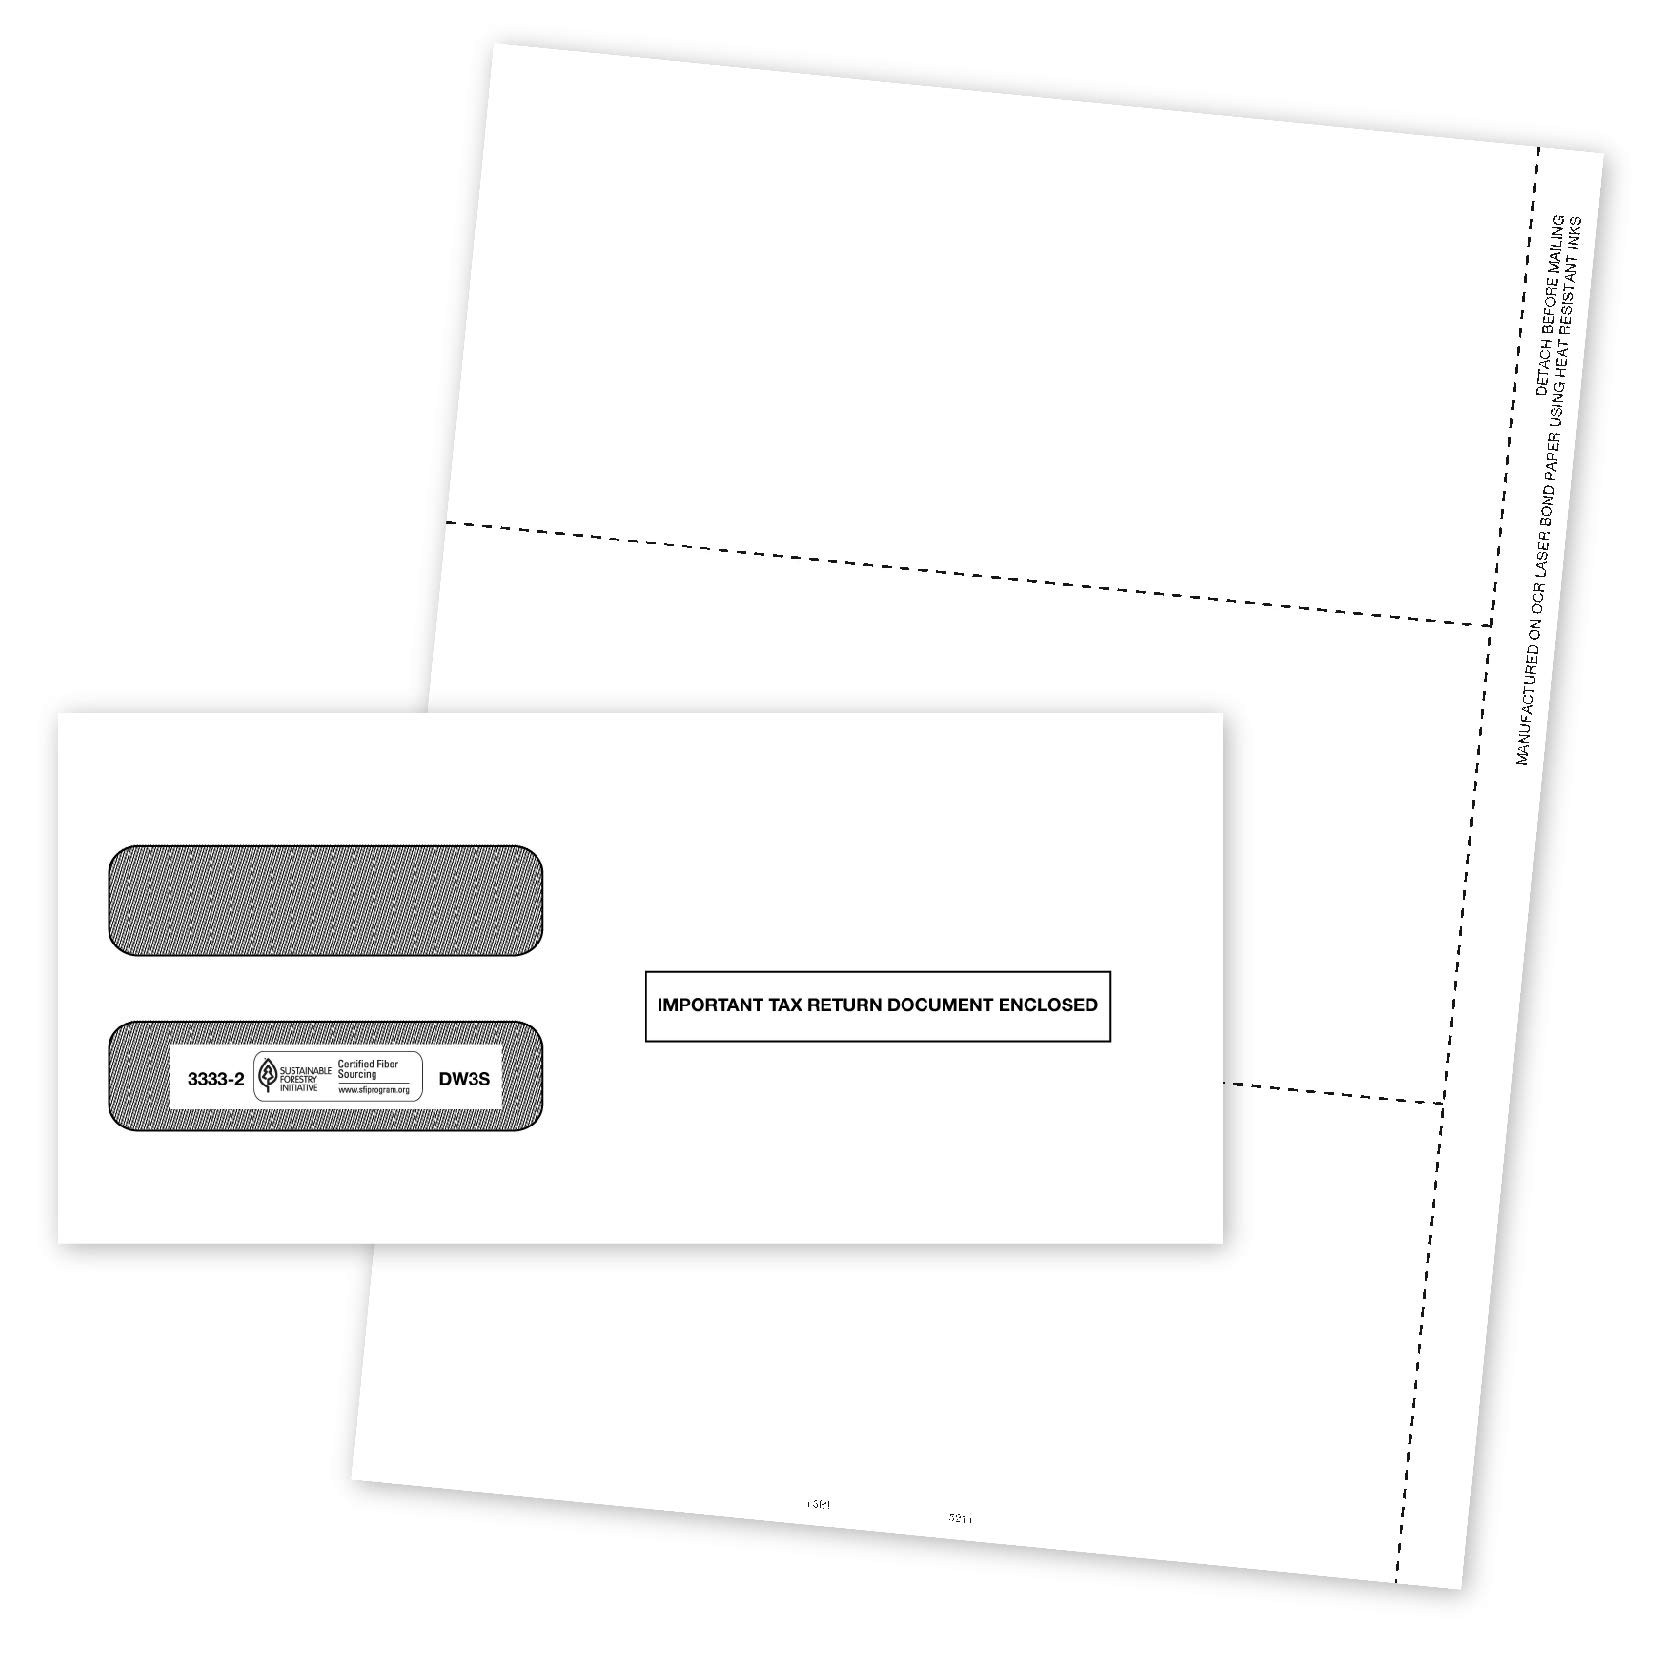 Blank 2019 W2 3-Up Tax Forms, 50 Employee Sets, Designed for QuickBooks and Accounting Software, Ideal for E-Filing, Works with Laser or Inkjet Printers, 50 Sheets and 50 Self Seal Envelopes by Blue Summit Supplies